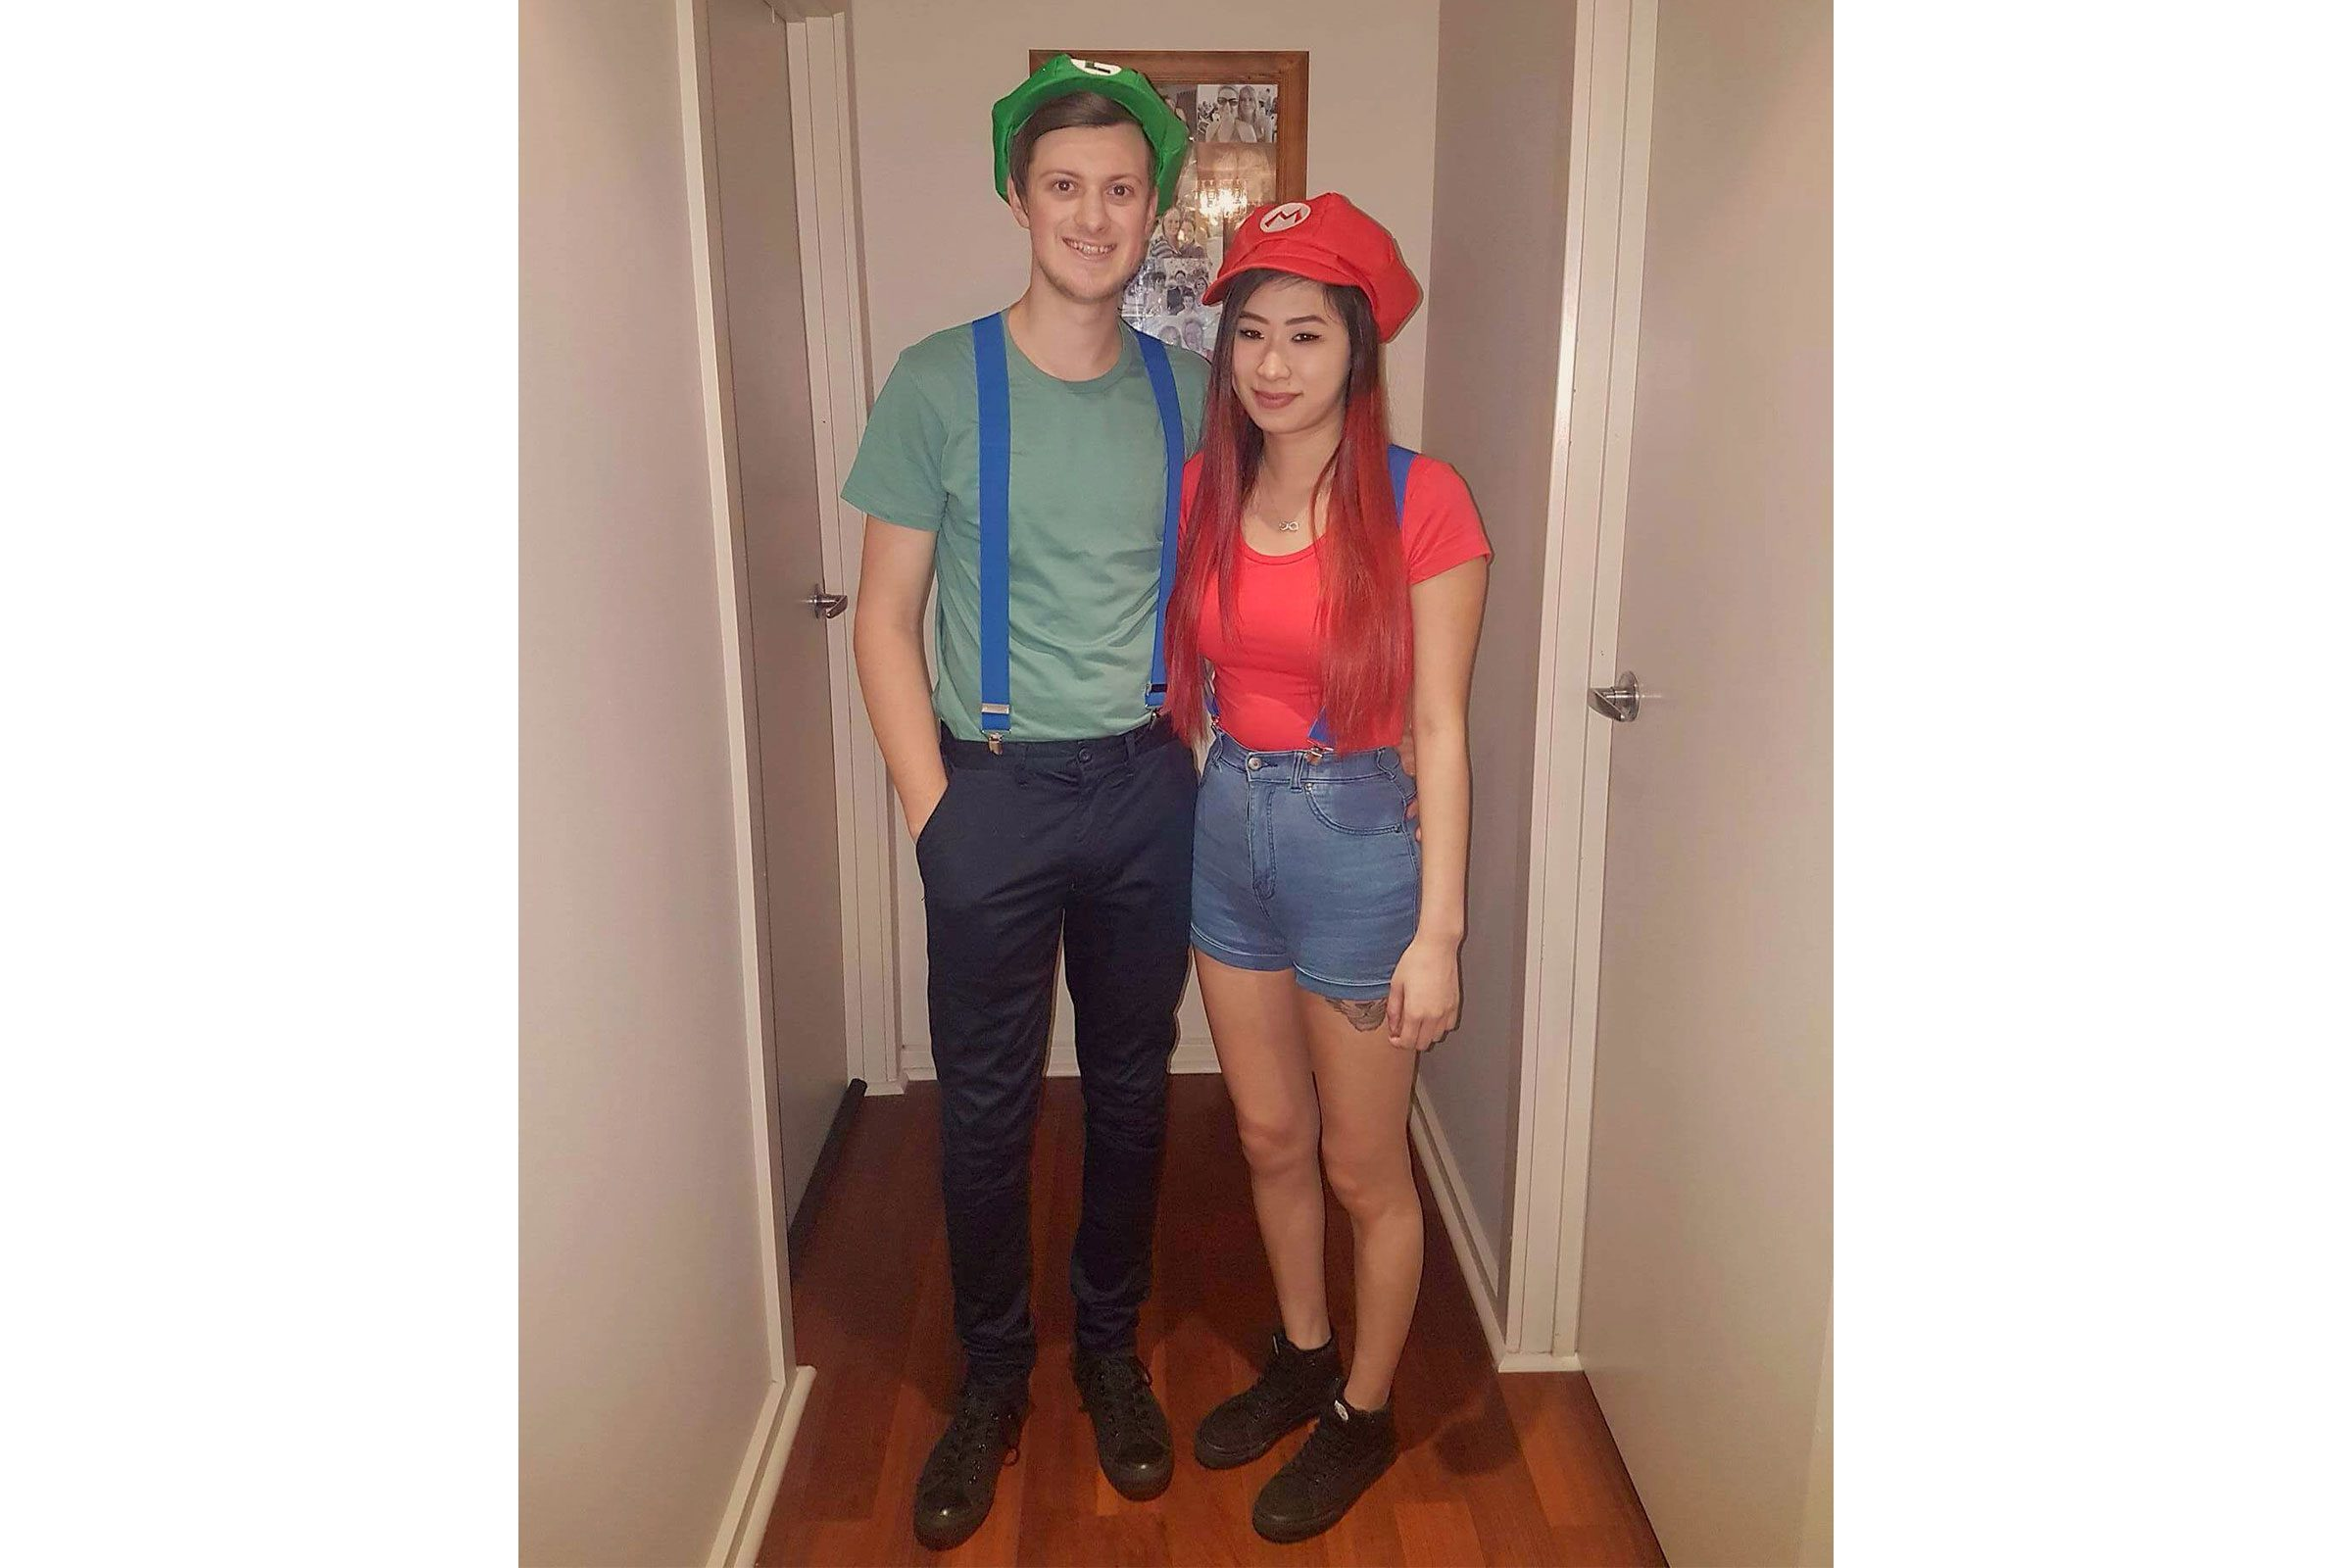 15 halloween costume ideas for couples | reader's digest